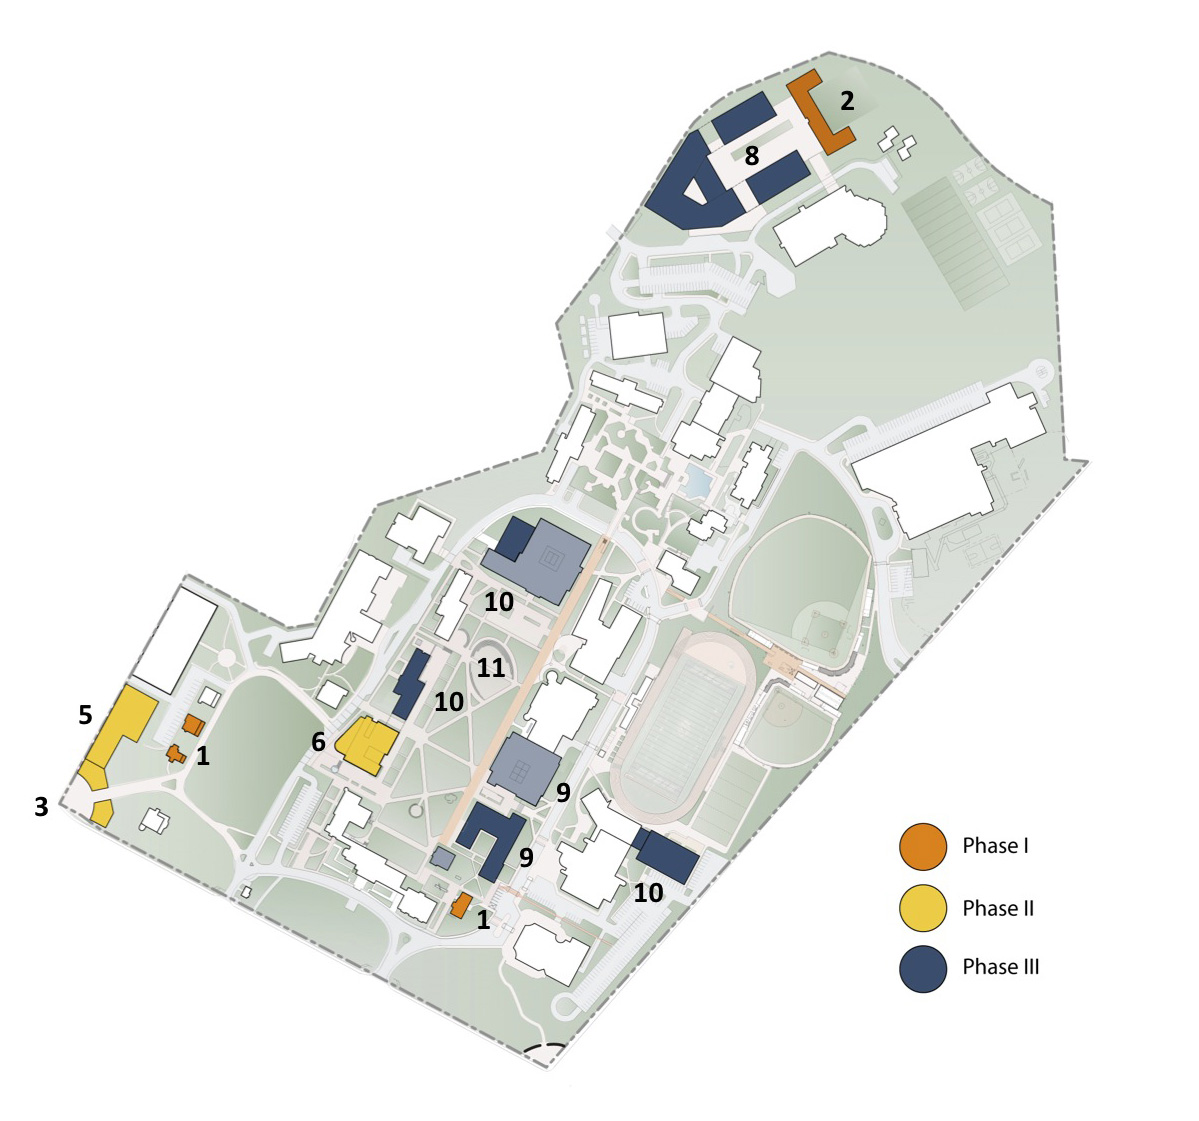 Campus Plan Projects – Gallaudet University on raritan valley community college map, catholic university of america map, delaware university map, fontbonne university map, cleveland park map, notre dame of maryland university map, university plaza niu campus map, bloomfield college map, yale law school map, historically black colleges and universities map, virginia university map, kentucky university map, st. mary's university map, simpson university map, university of hartford map, muhlenberg university map, new mexico university map, university of maine at farmington map, american university map, college of the holy cross map,